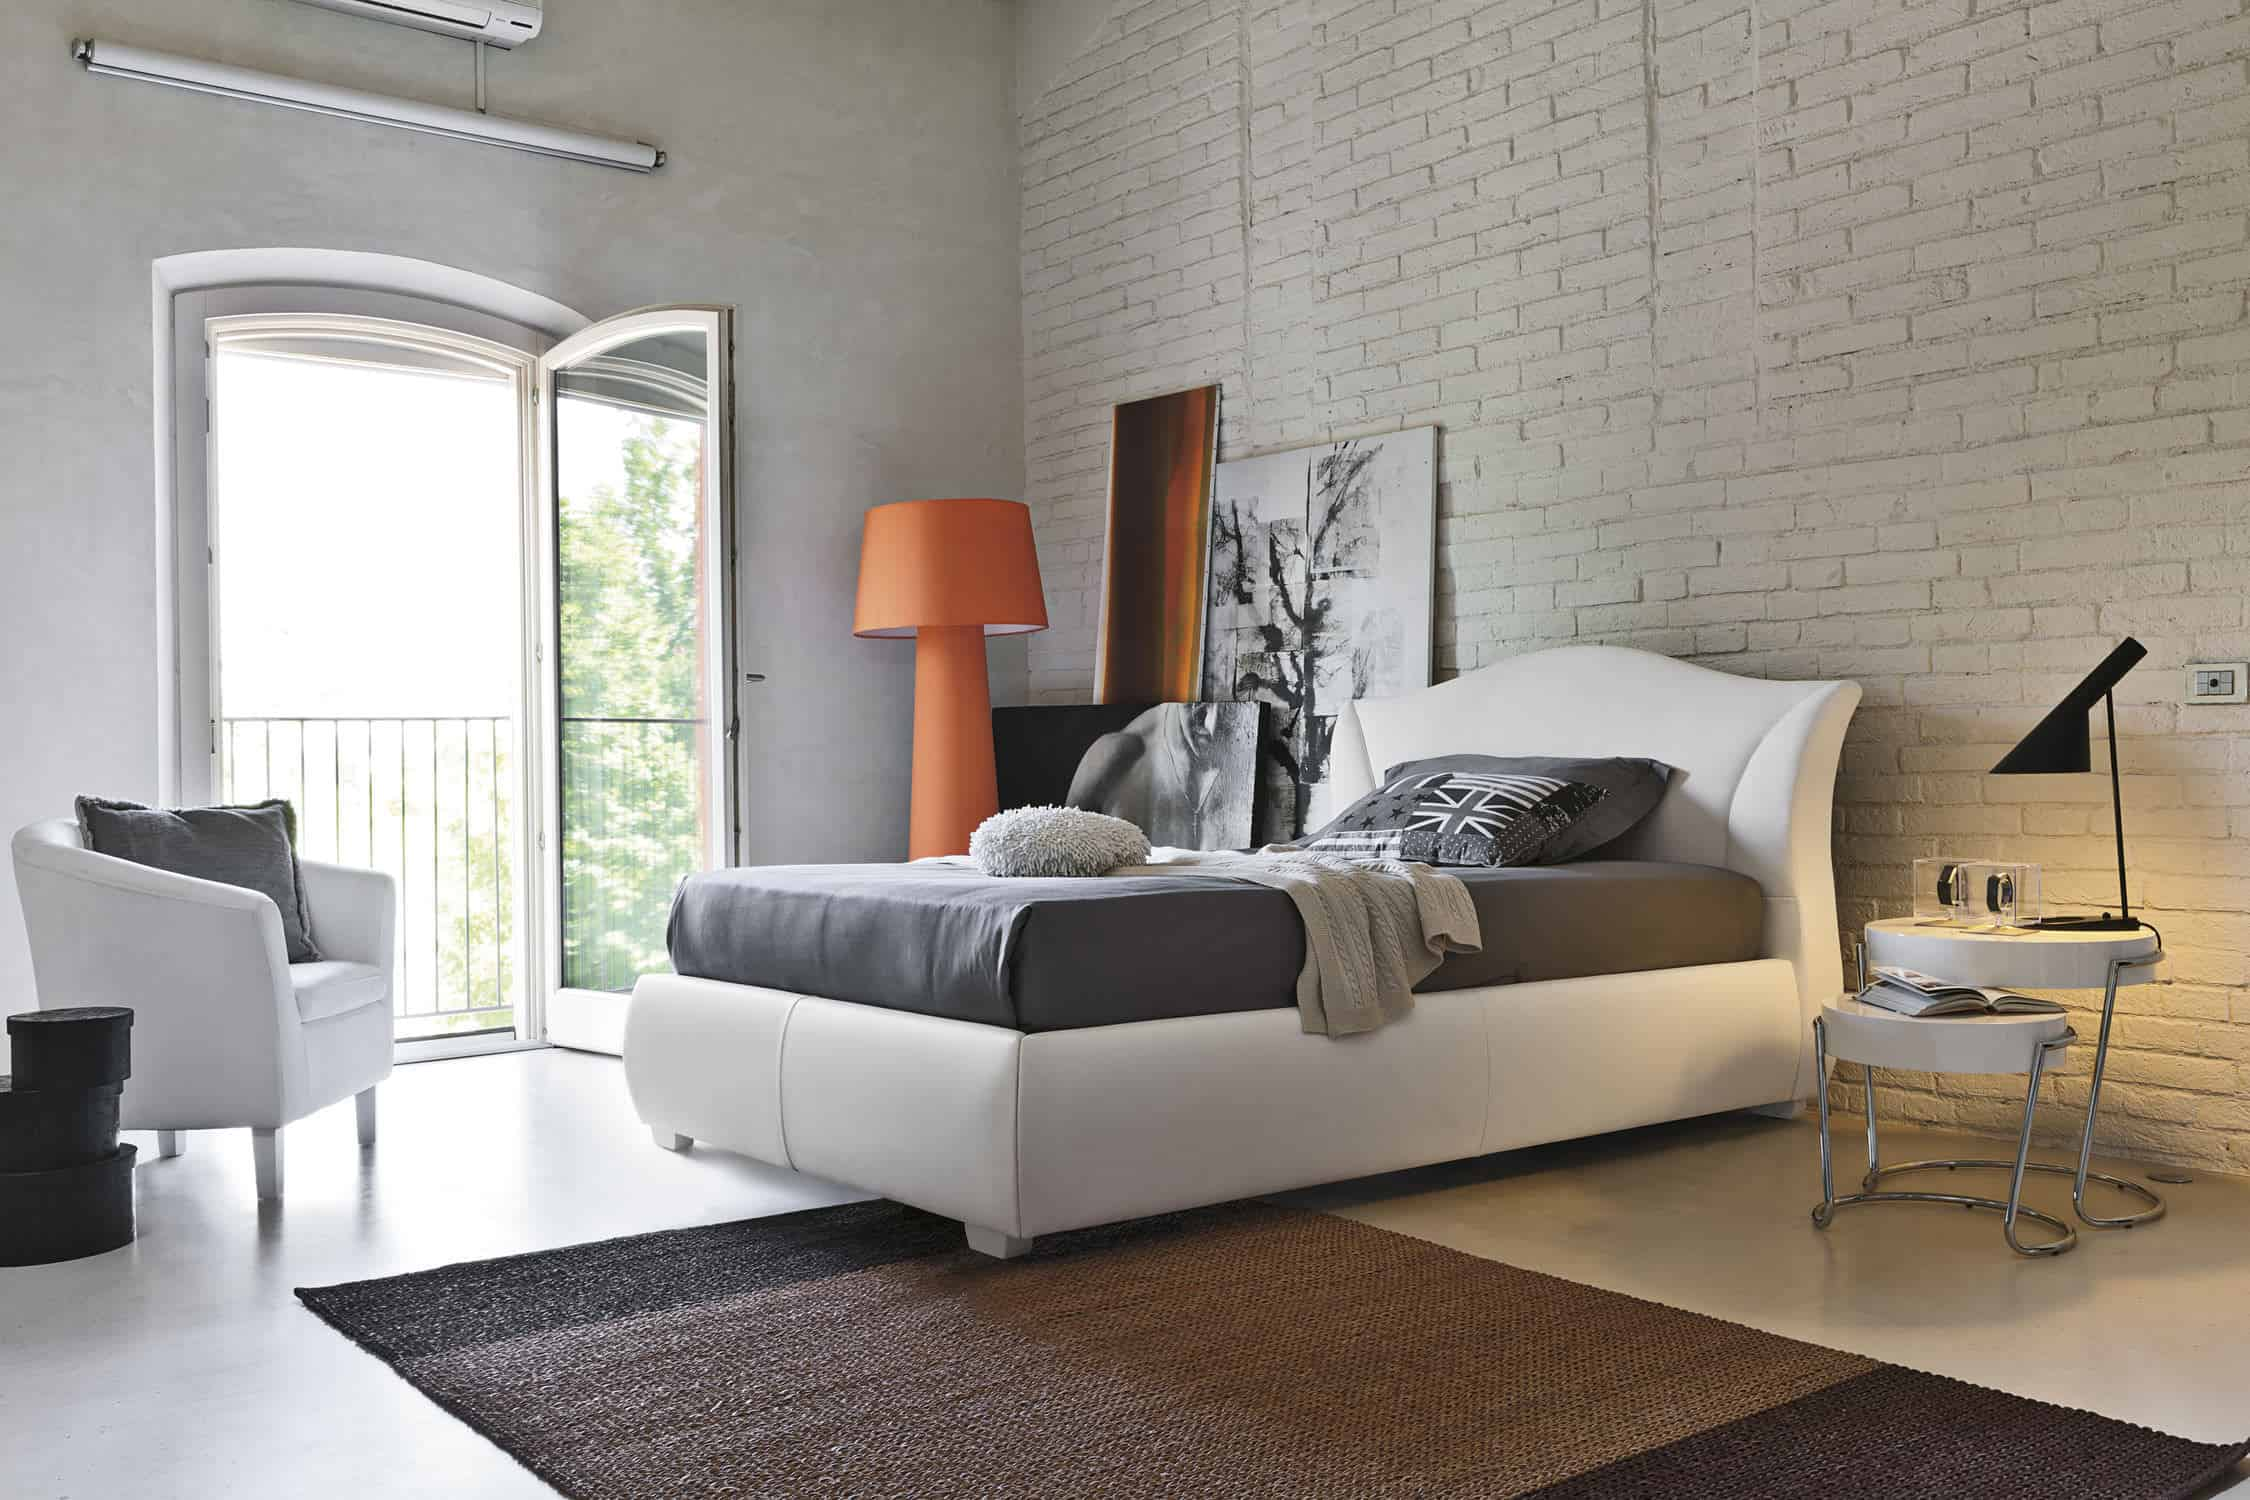 Modern Bedroom Design Ideas - White brick interiors